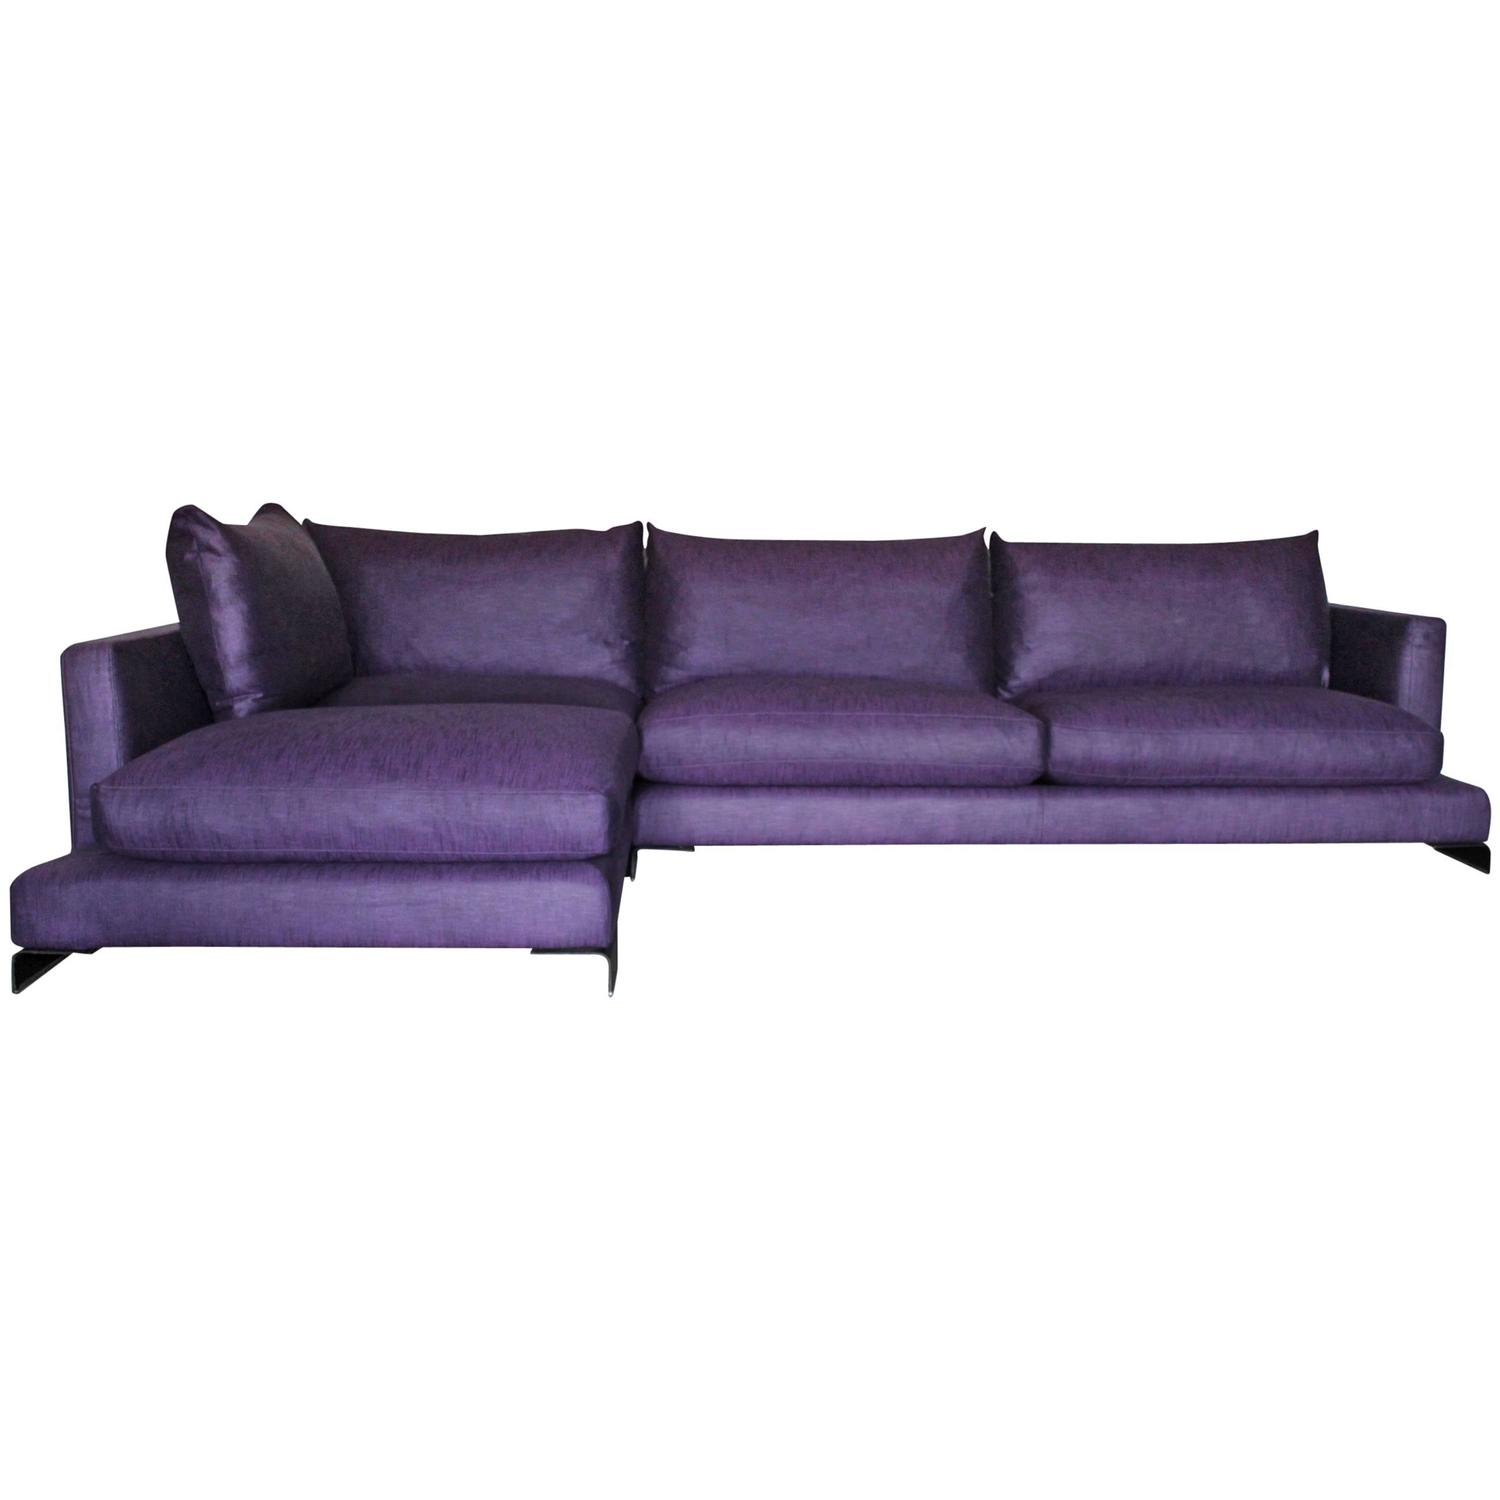 "Flexform ""Long Island"" L Shape Sofa in Purple and Black Linen For"